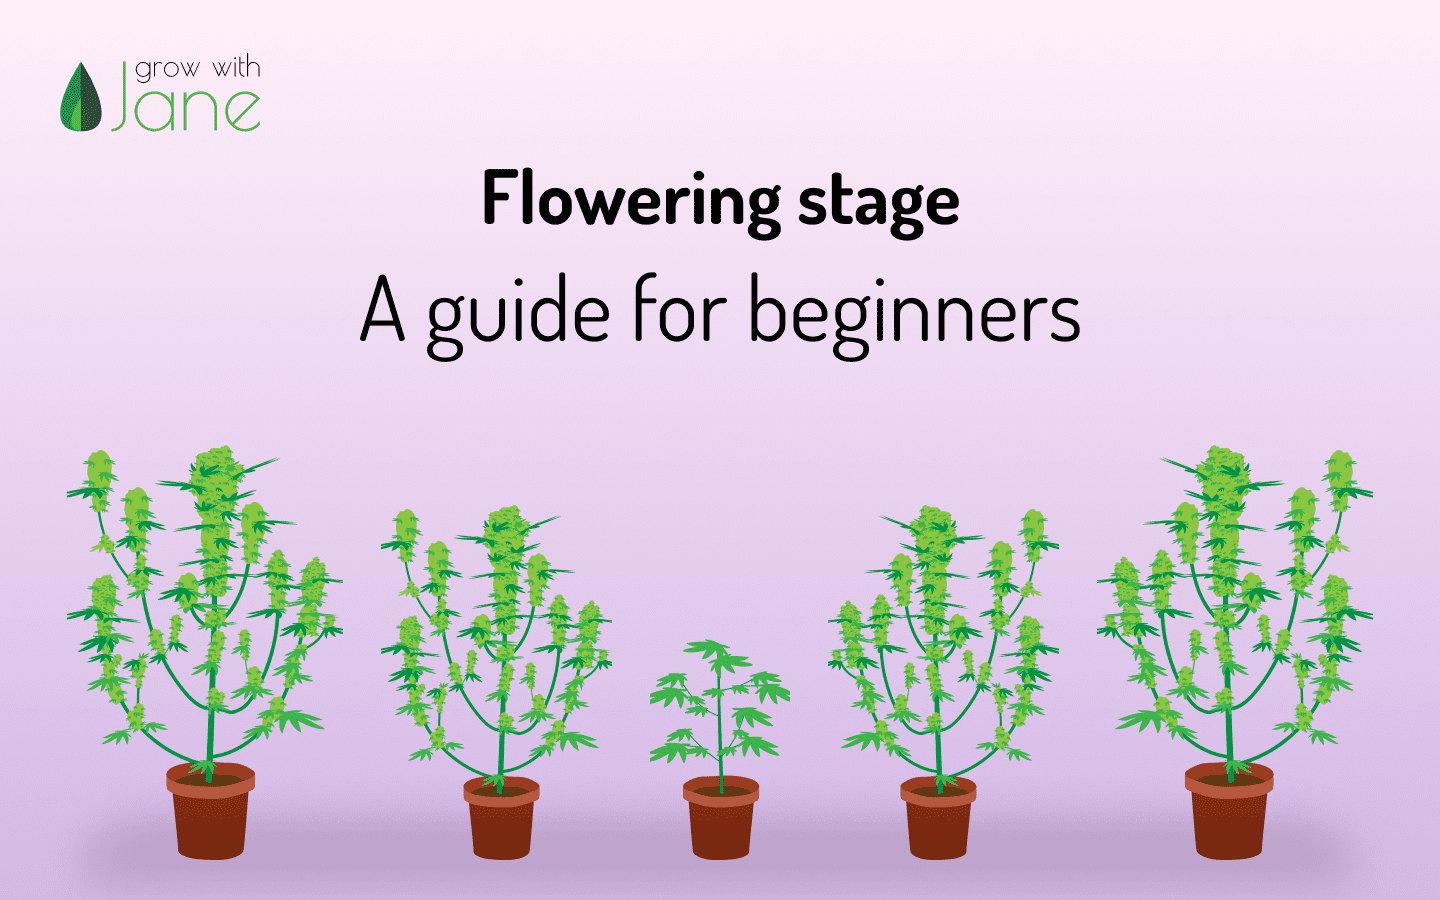 Flowering Stage - A guide for beginners